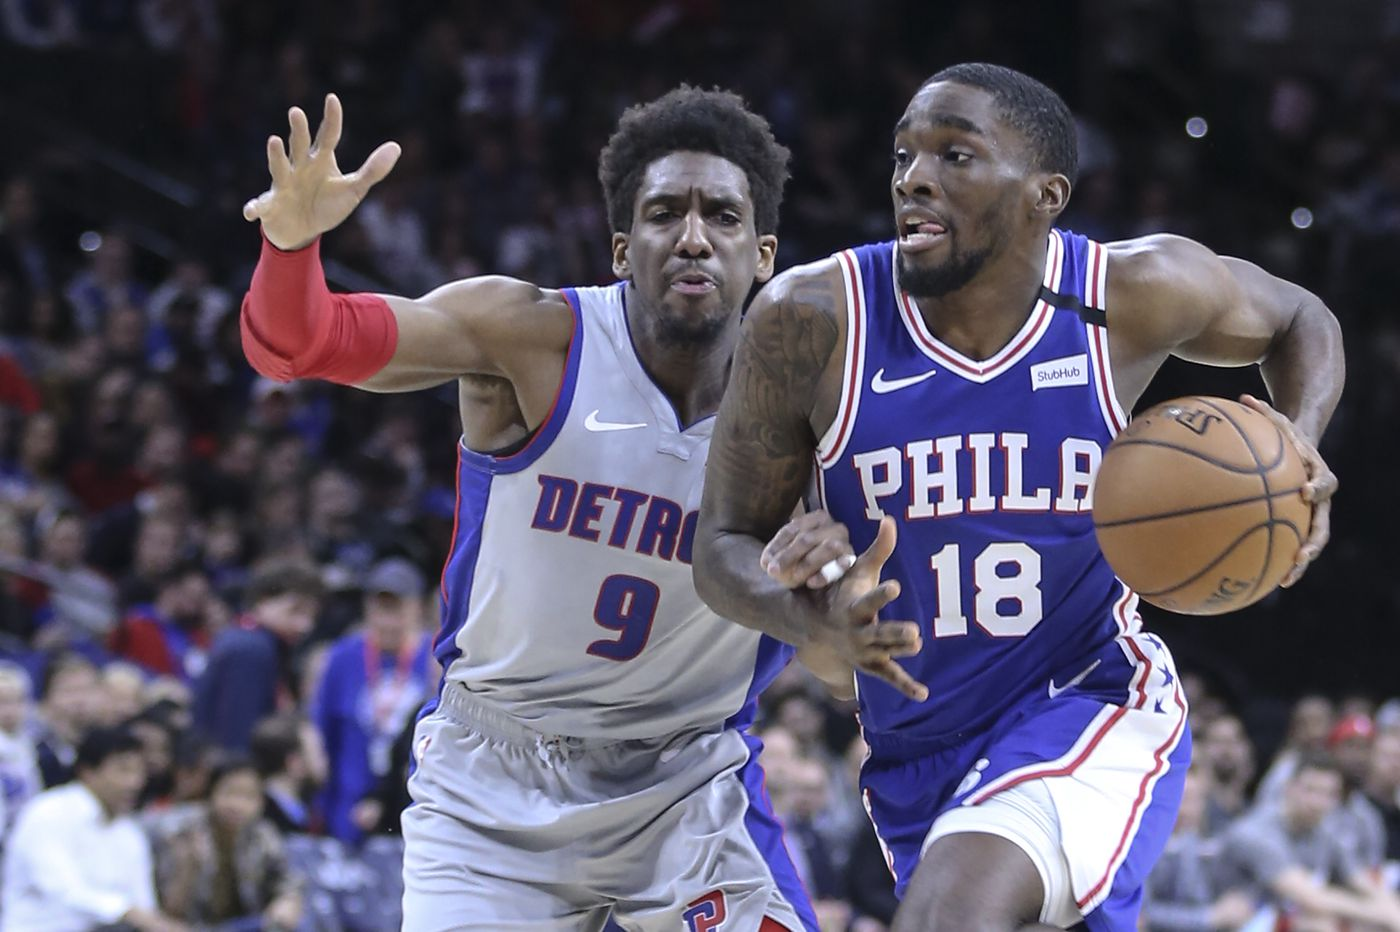 Shake Milton joins Sixers teammate Joel Embiid in sharing his misgiving about the NBA's return